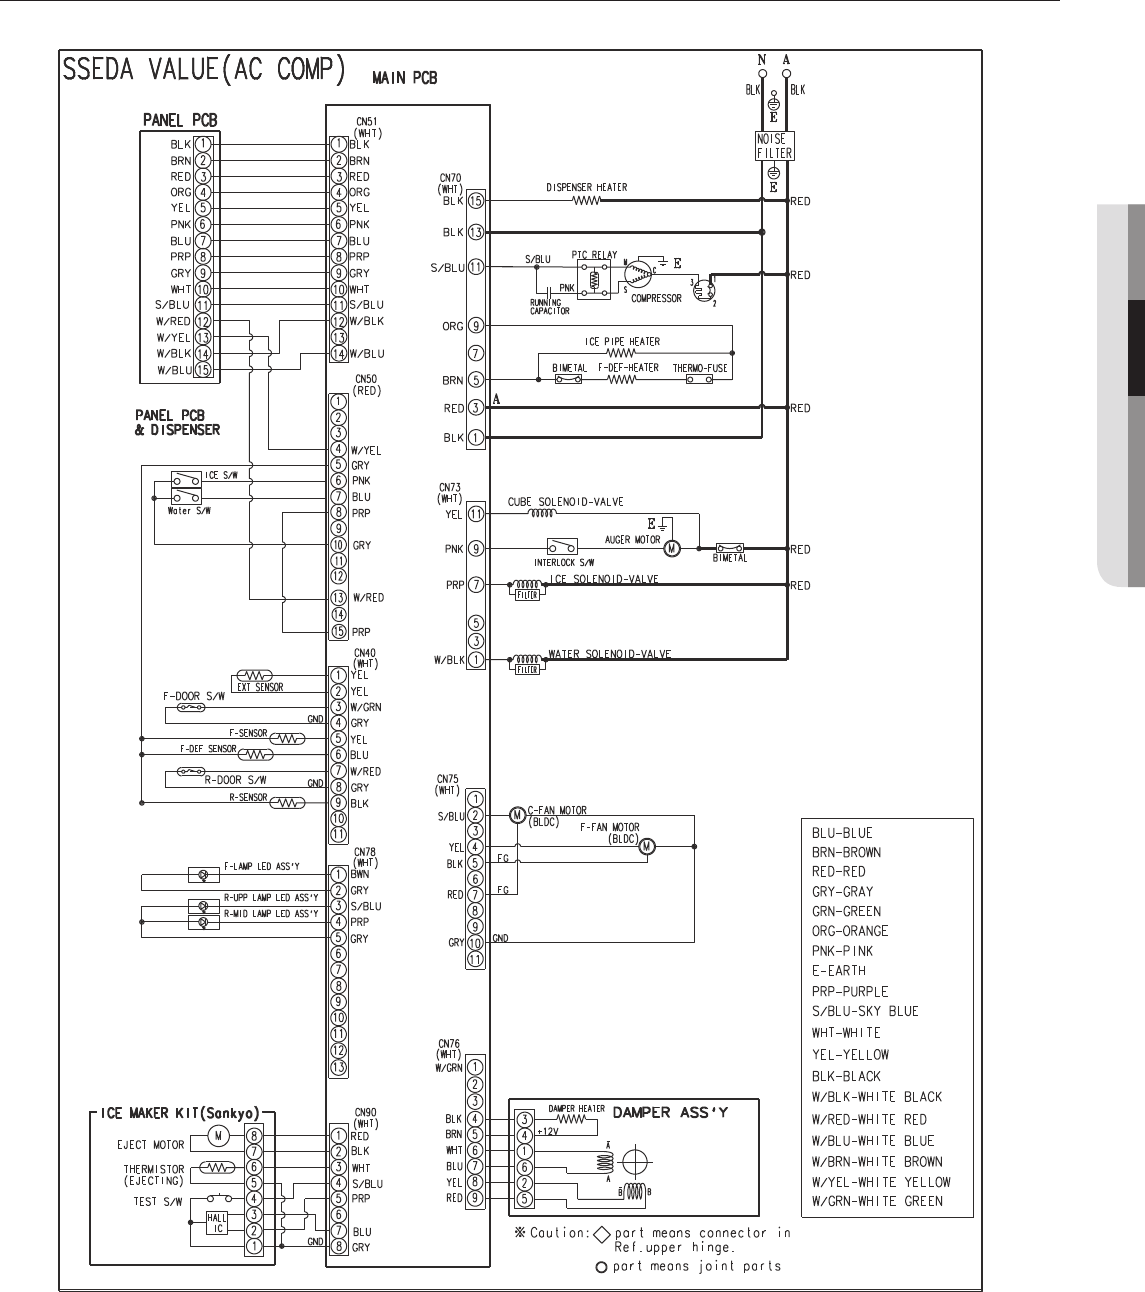 21aa6212 5c03 4539 ac02 99a0885d5c5e bg1f page 31 of samsung refrigerator rs261mdwp user guide wiring diagram for a refrigerator compressor at panicattacktreatment.co